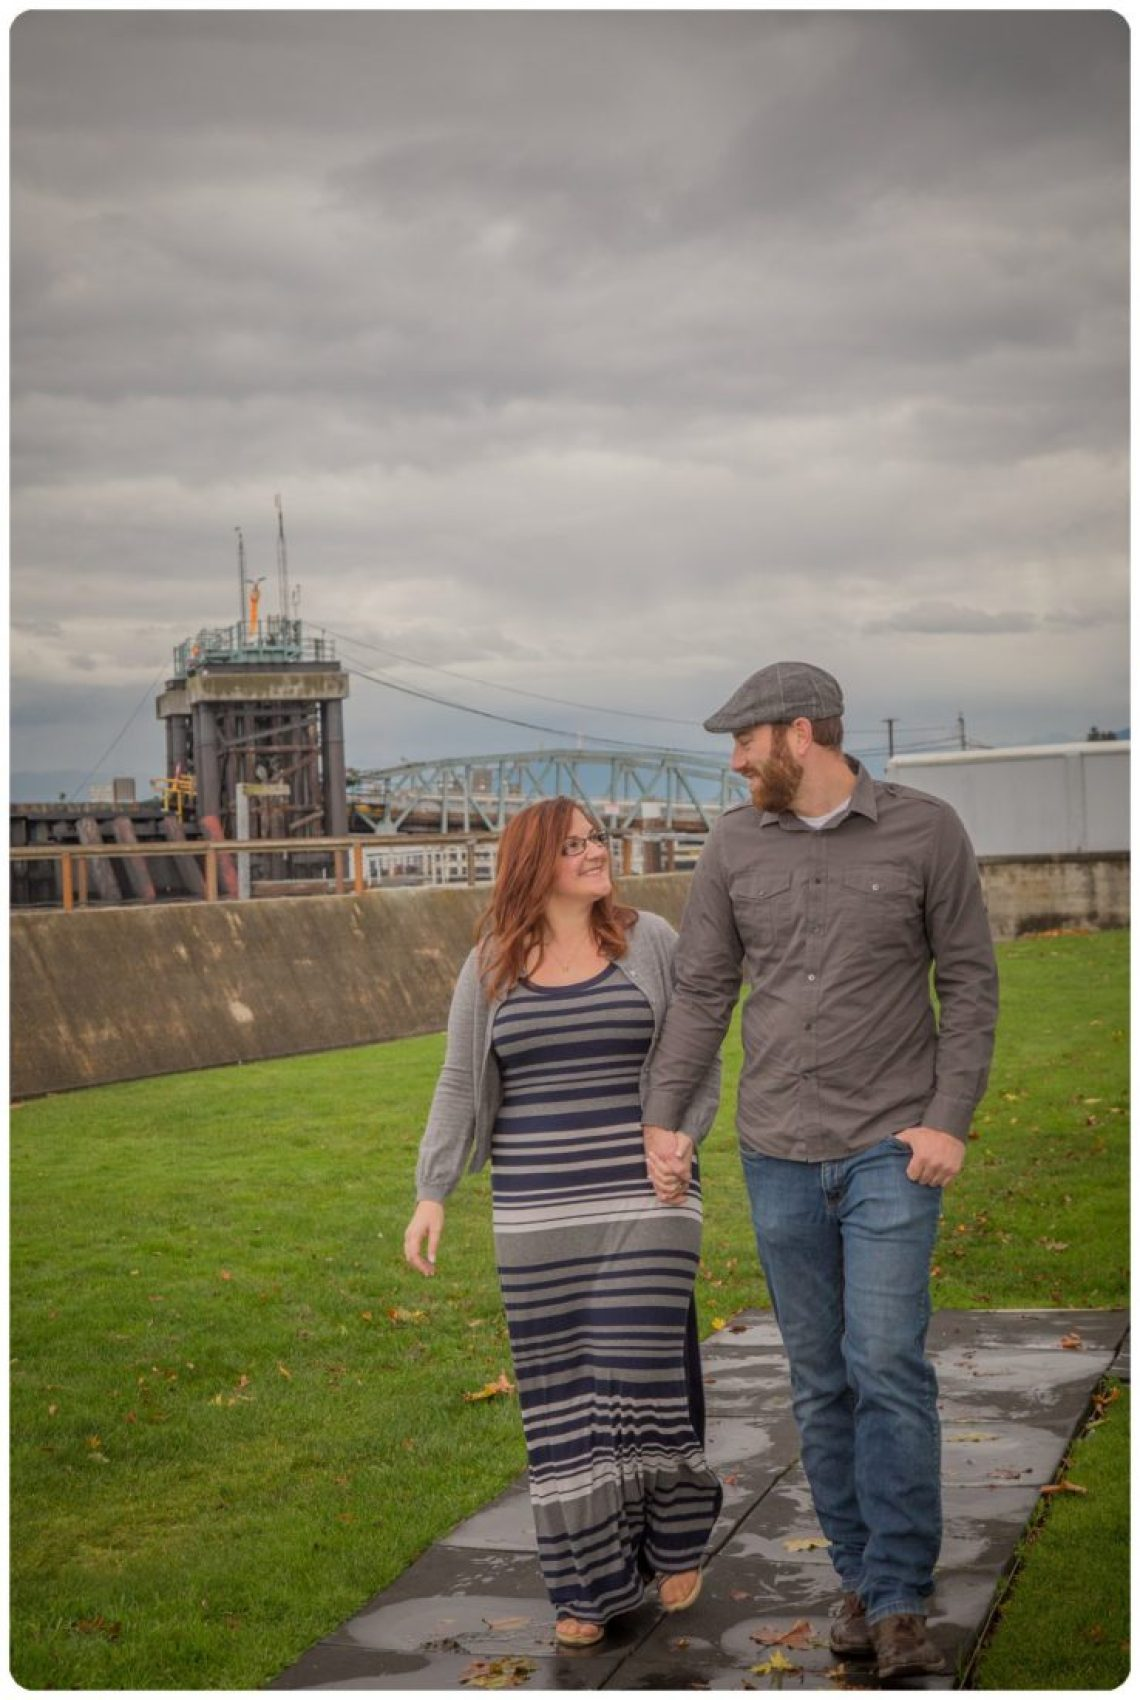 2017 02 06 0007 Sailing our love through blue skys | Mukilteo Lighthouse Engagement Session